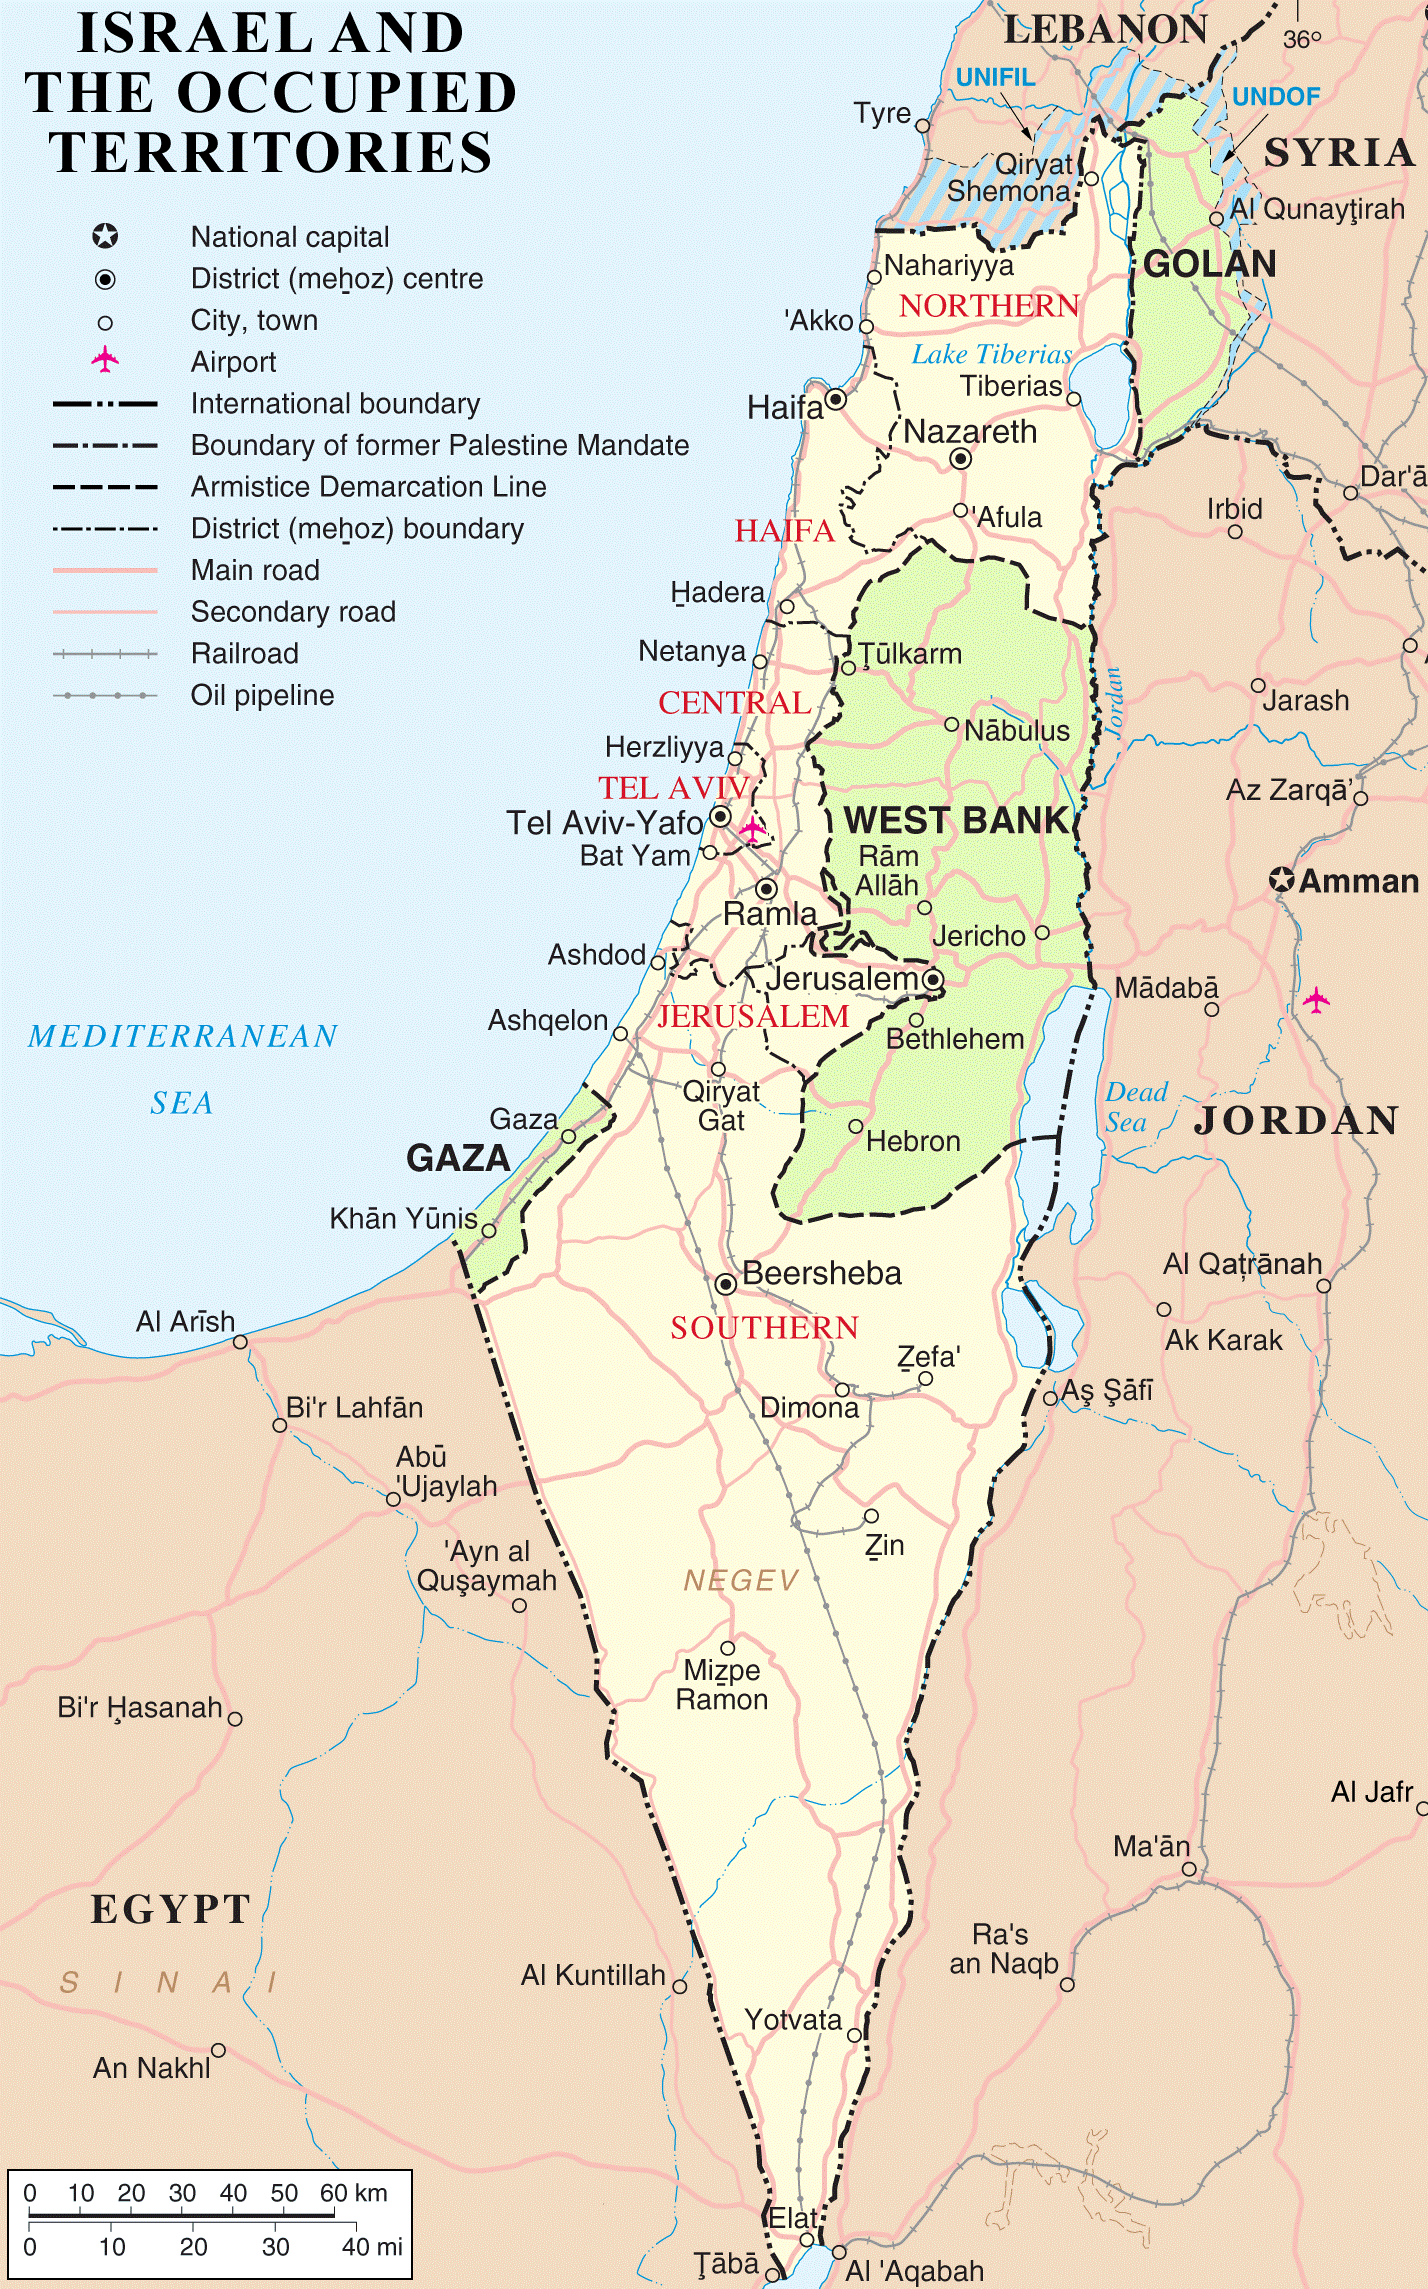 Figure 2: 'Israel and the OccupiedTerritories ', 1967. The World Post.